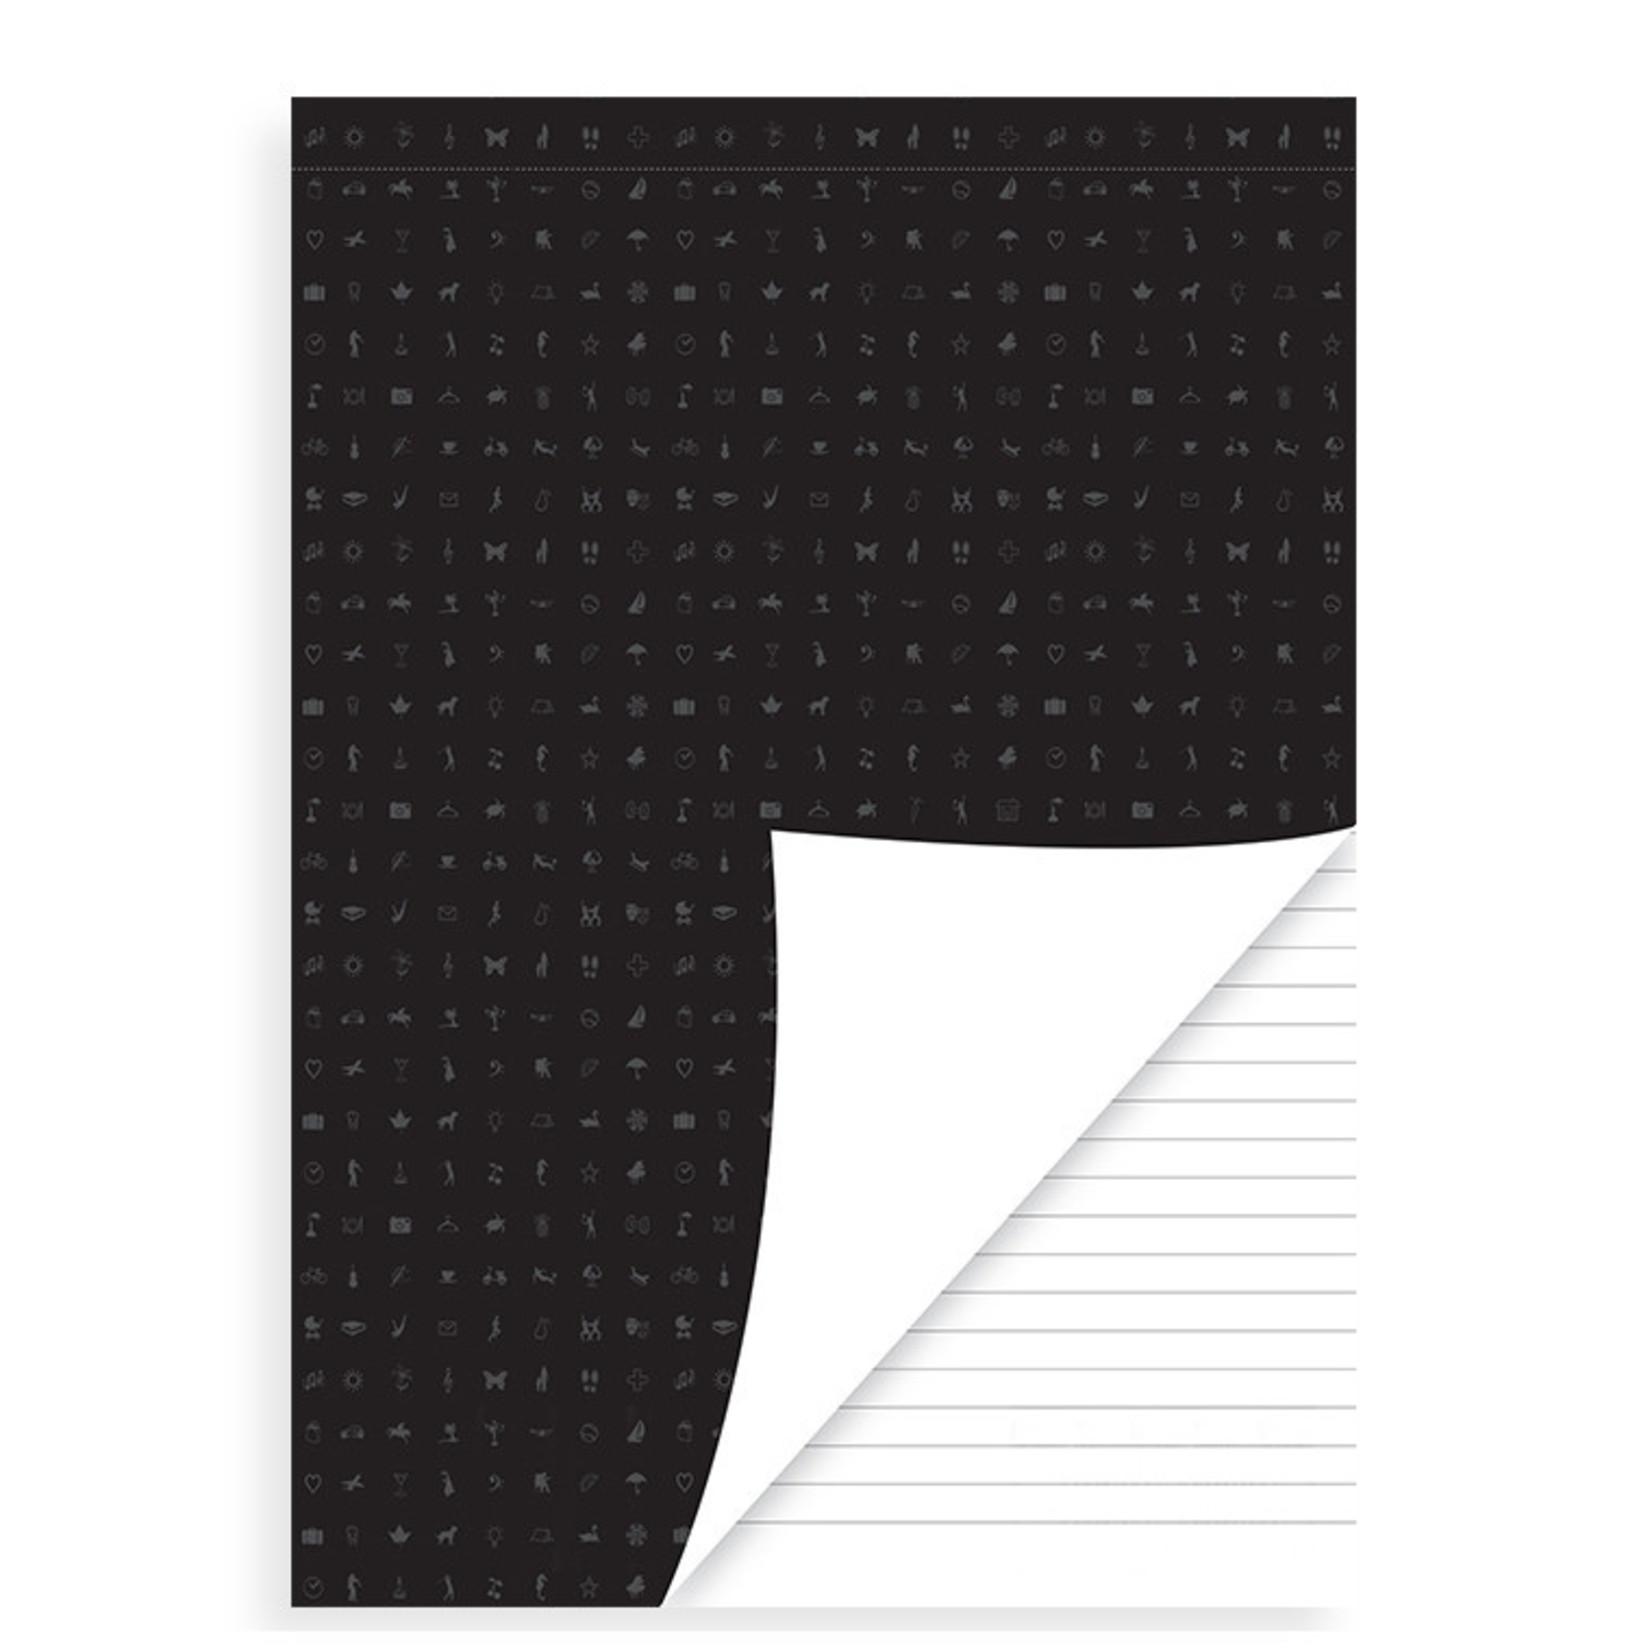 Filofax Deutschland A5 Notepad micro perforated liniert